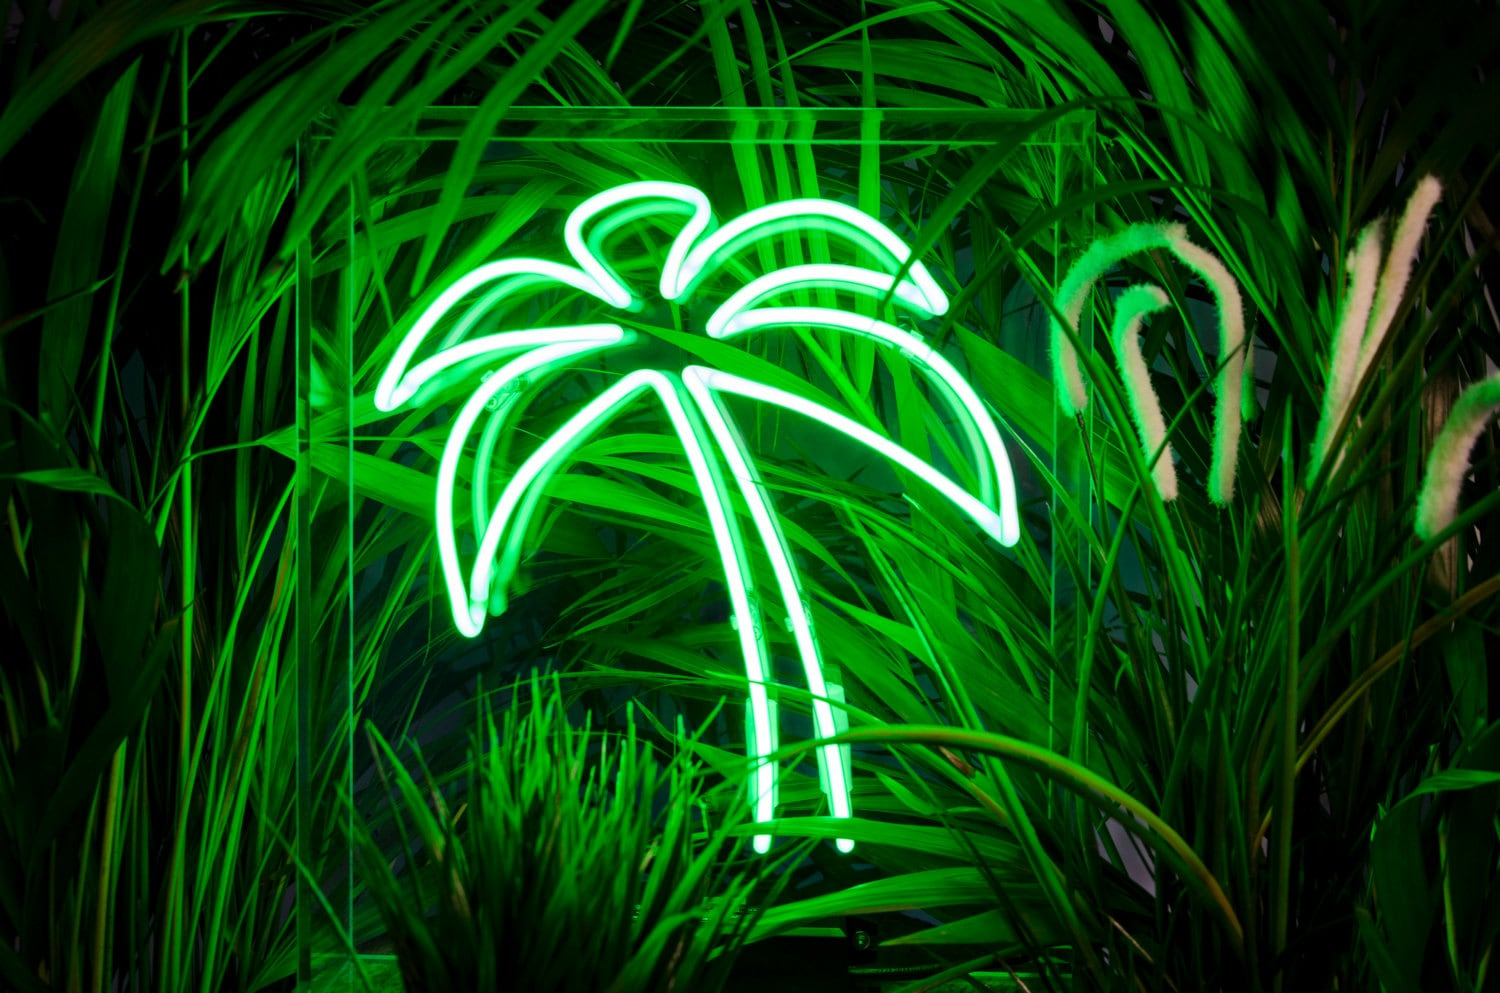 Syngs Palm Tree Neon Light Freestanding Neon Sign